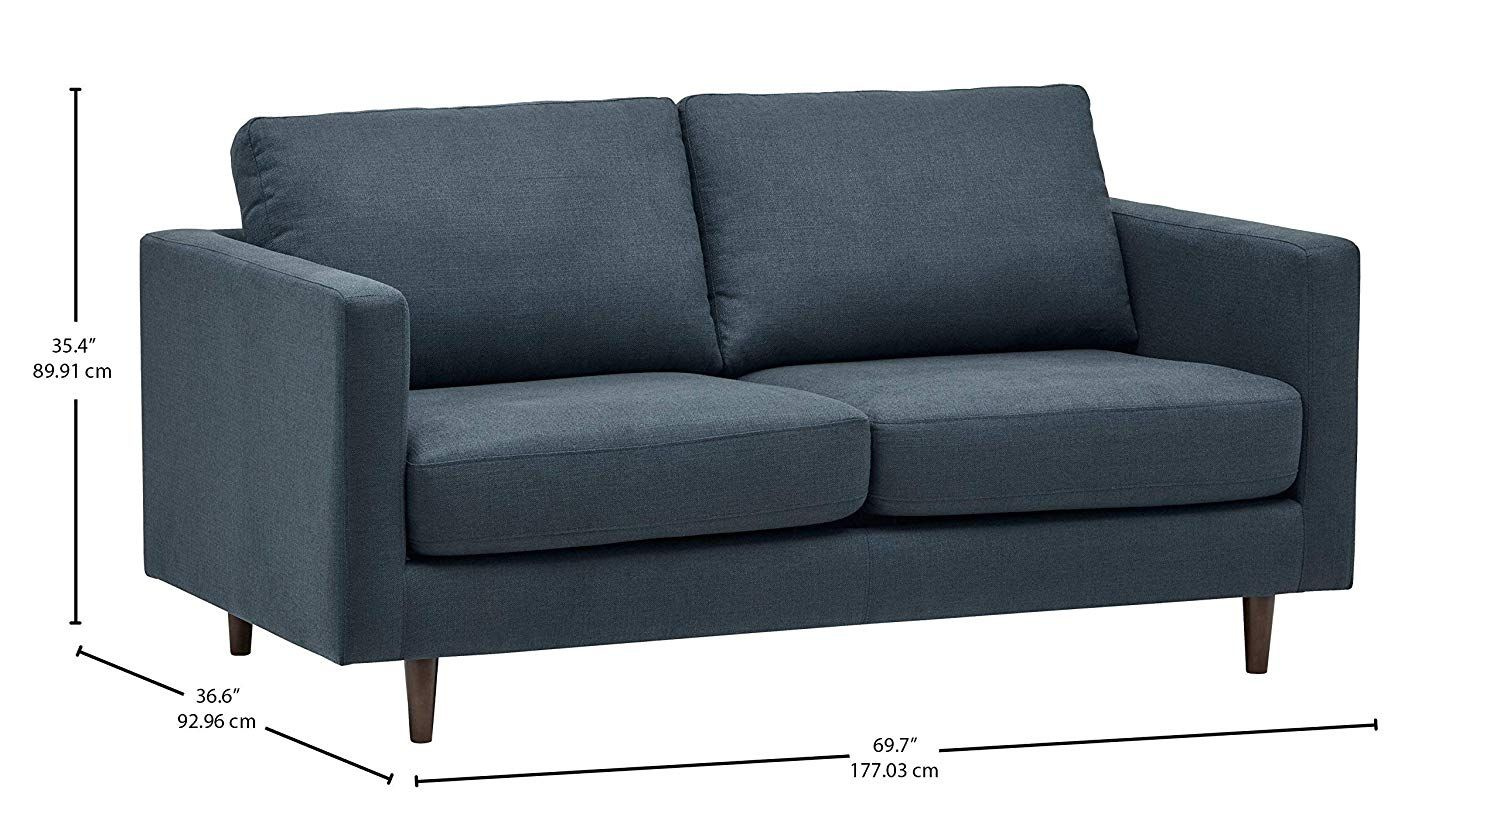 Amazon Com Rivet Revolve Modern Sofa Bed 70 W Grey Weave